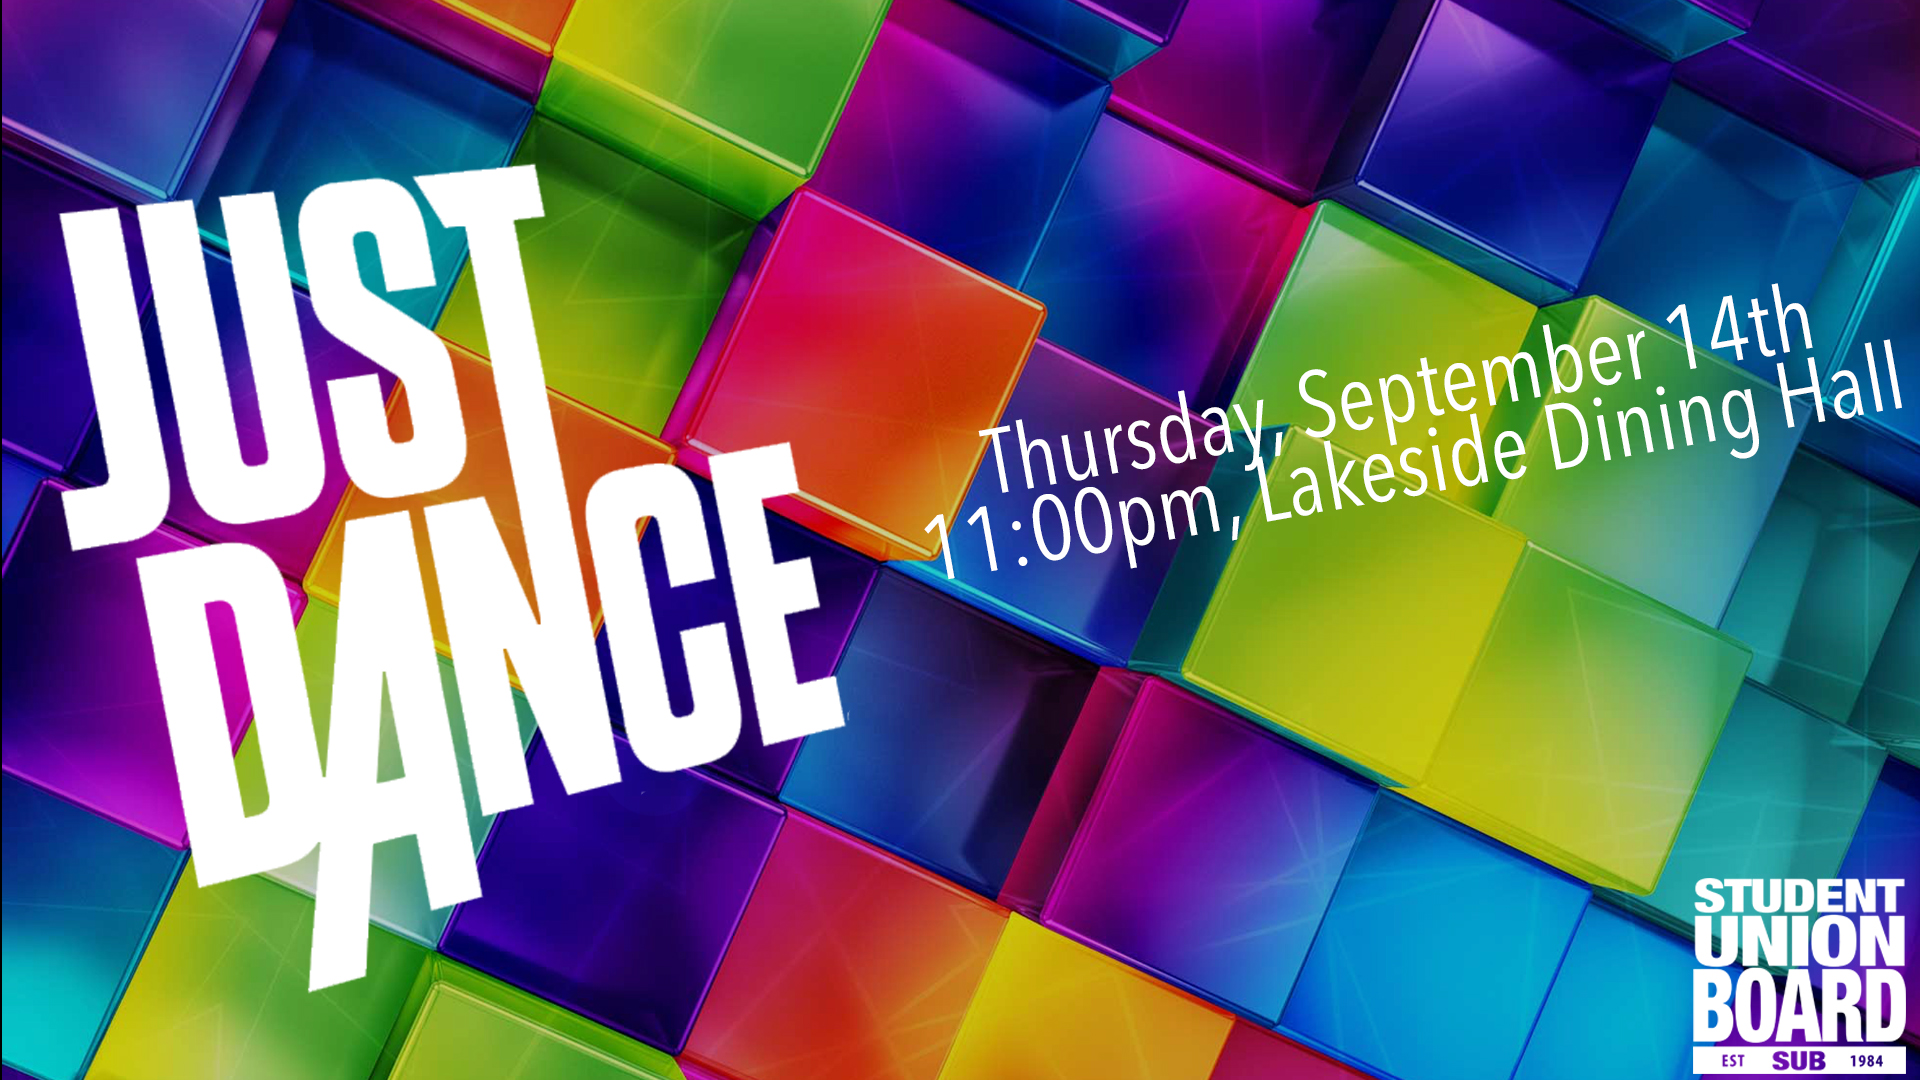 Come out and Just Dance all night long with us on September 14th at 11:00pm!